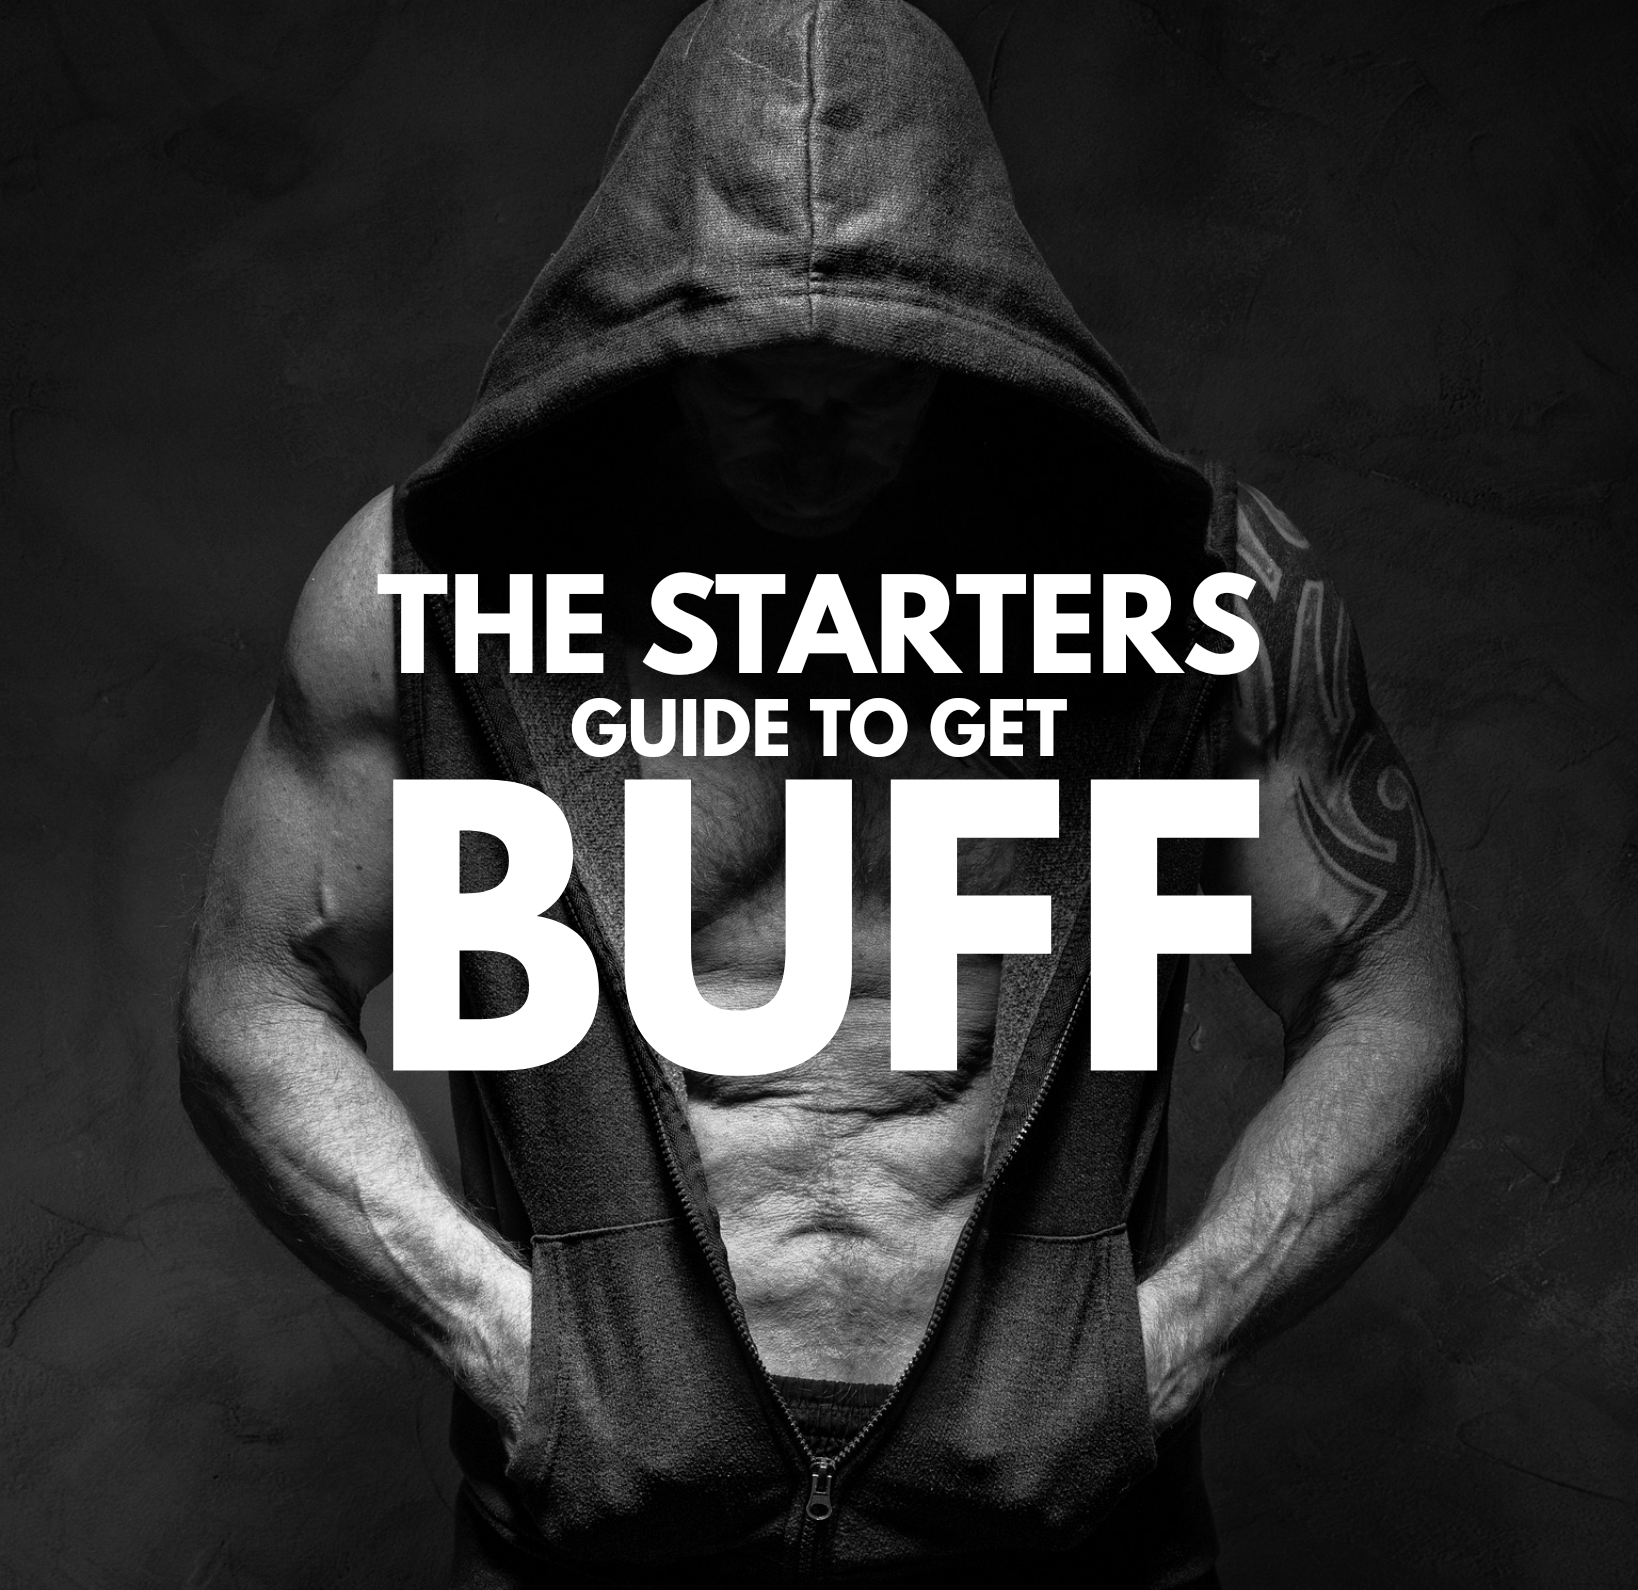 The Starters Guide to Get Buff